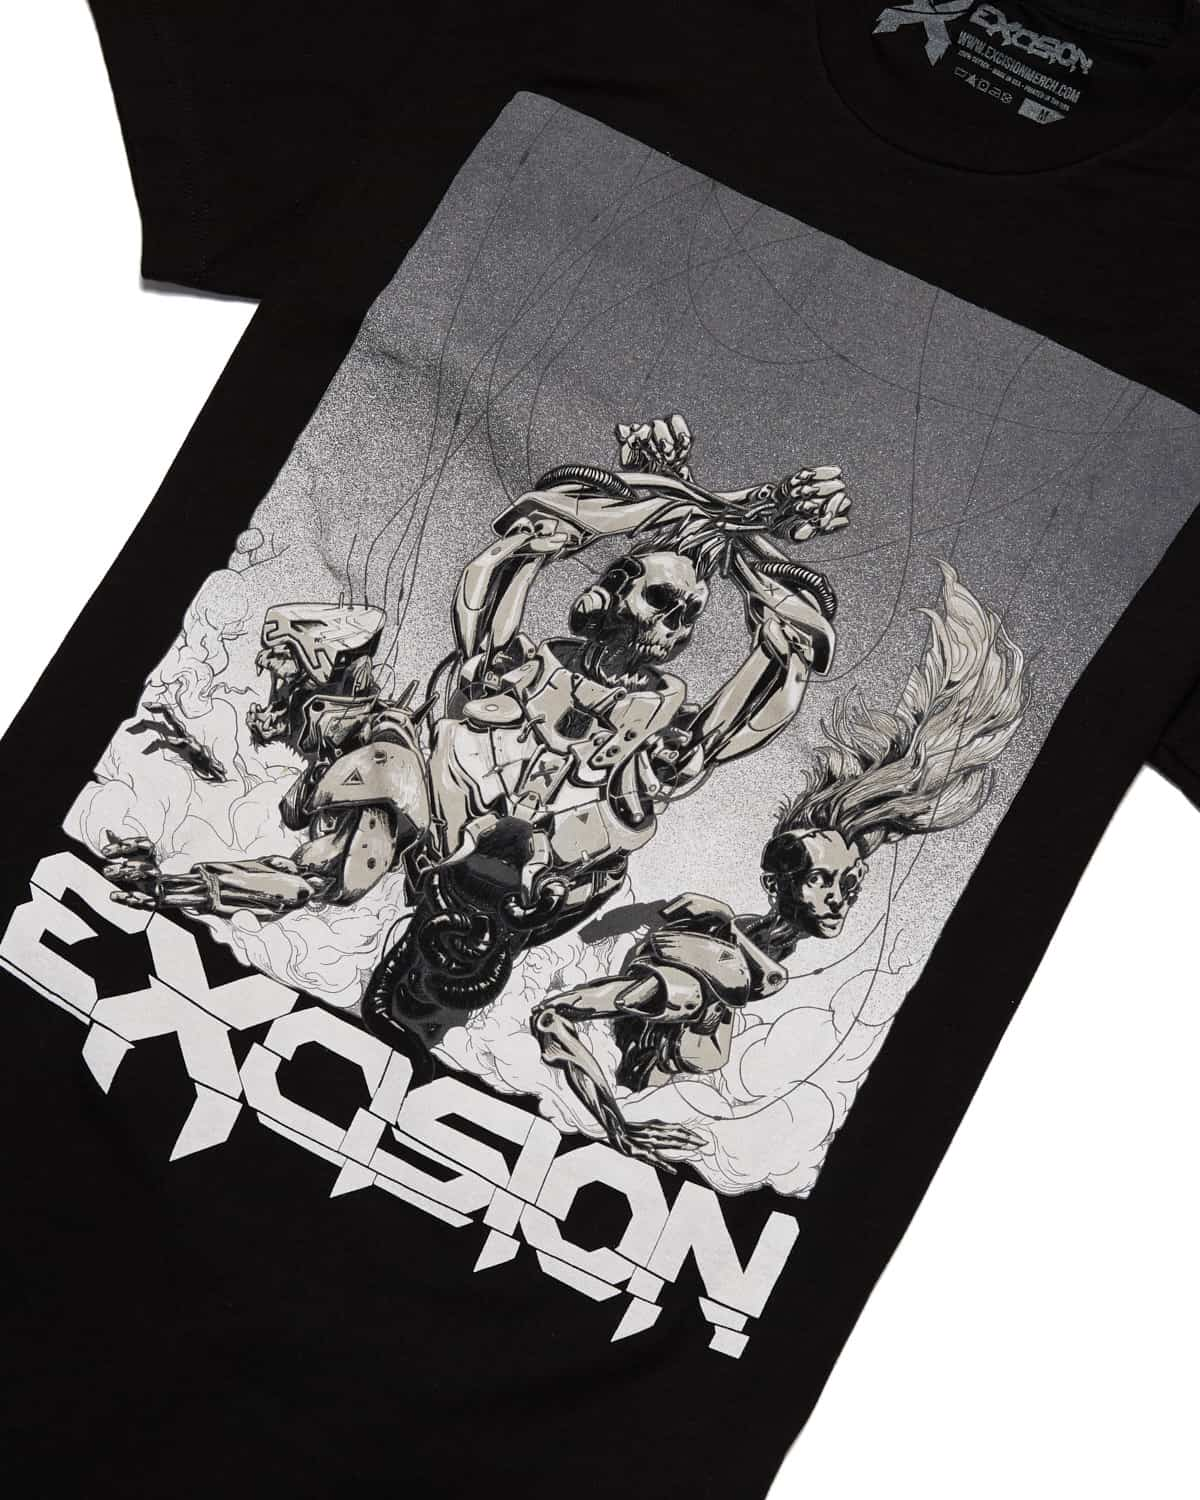 Excision 'Moshpit' Unisex T-Shirt - Black/Grey